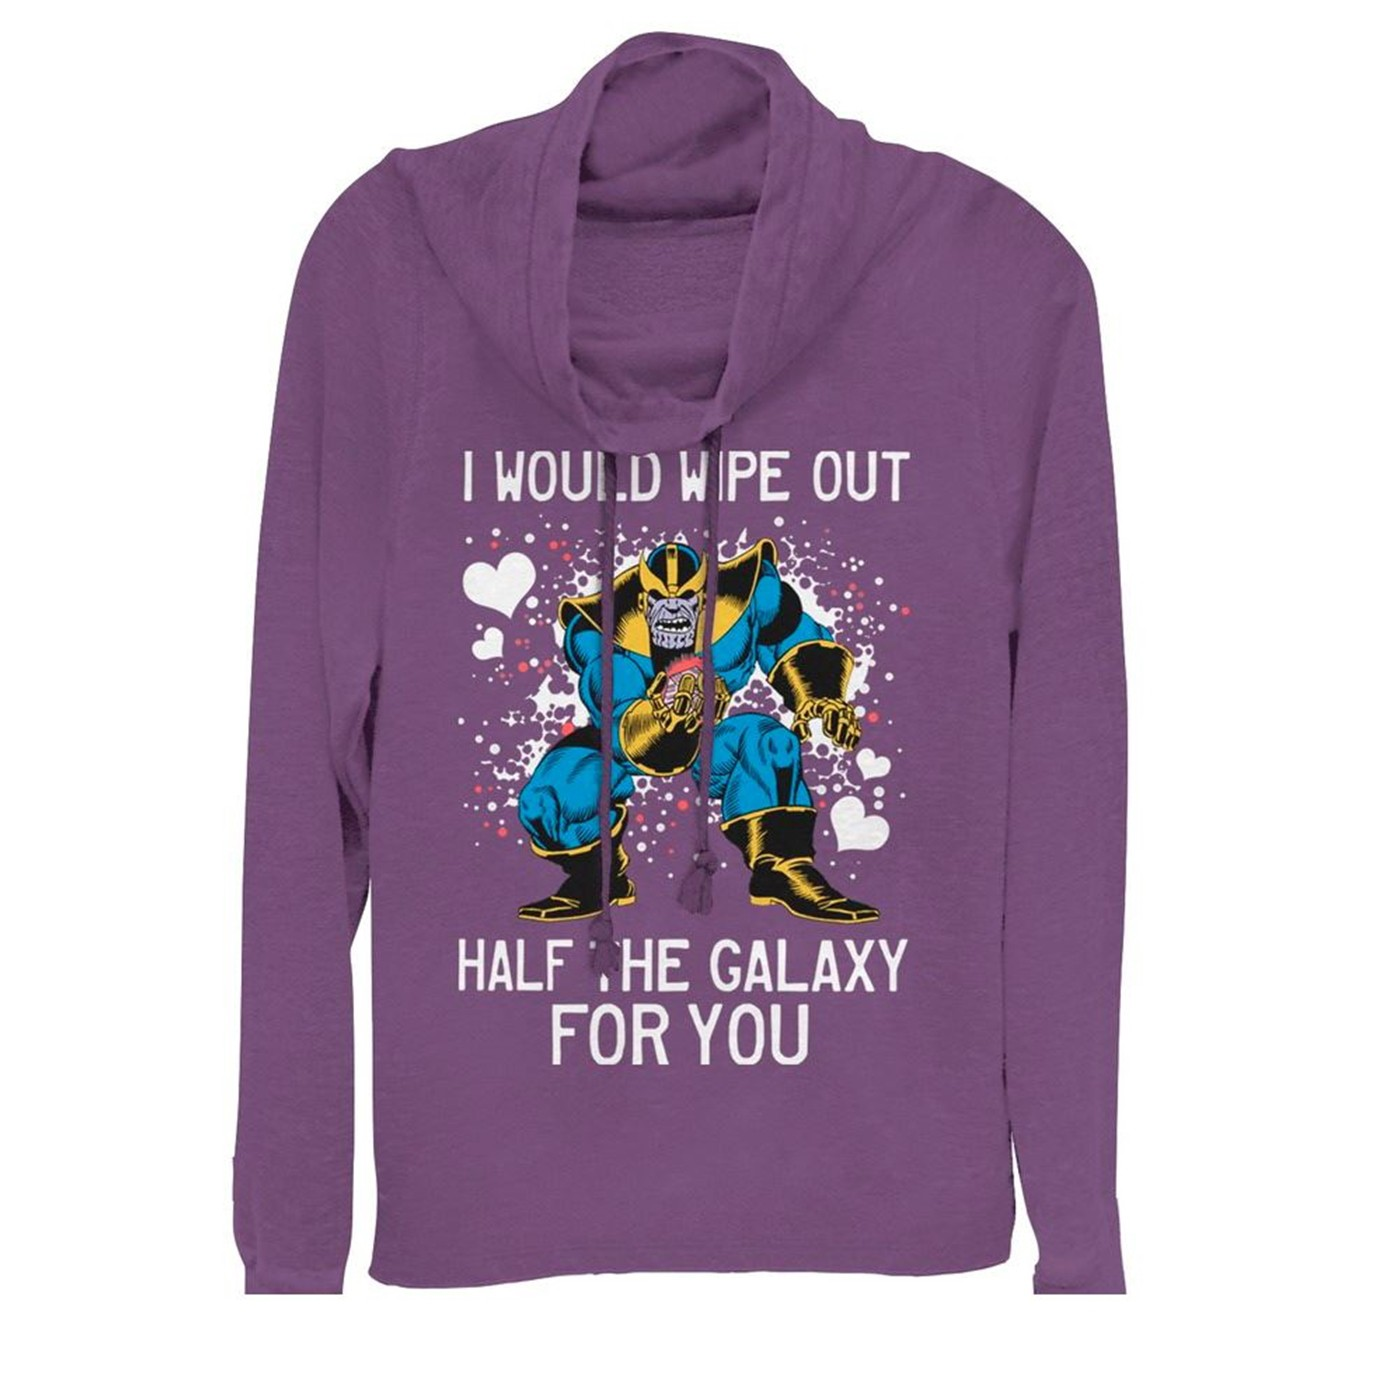 Valentine's Thanos Wipe Out Galaxy for You Cowl Neck Women's Sweatshirt